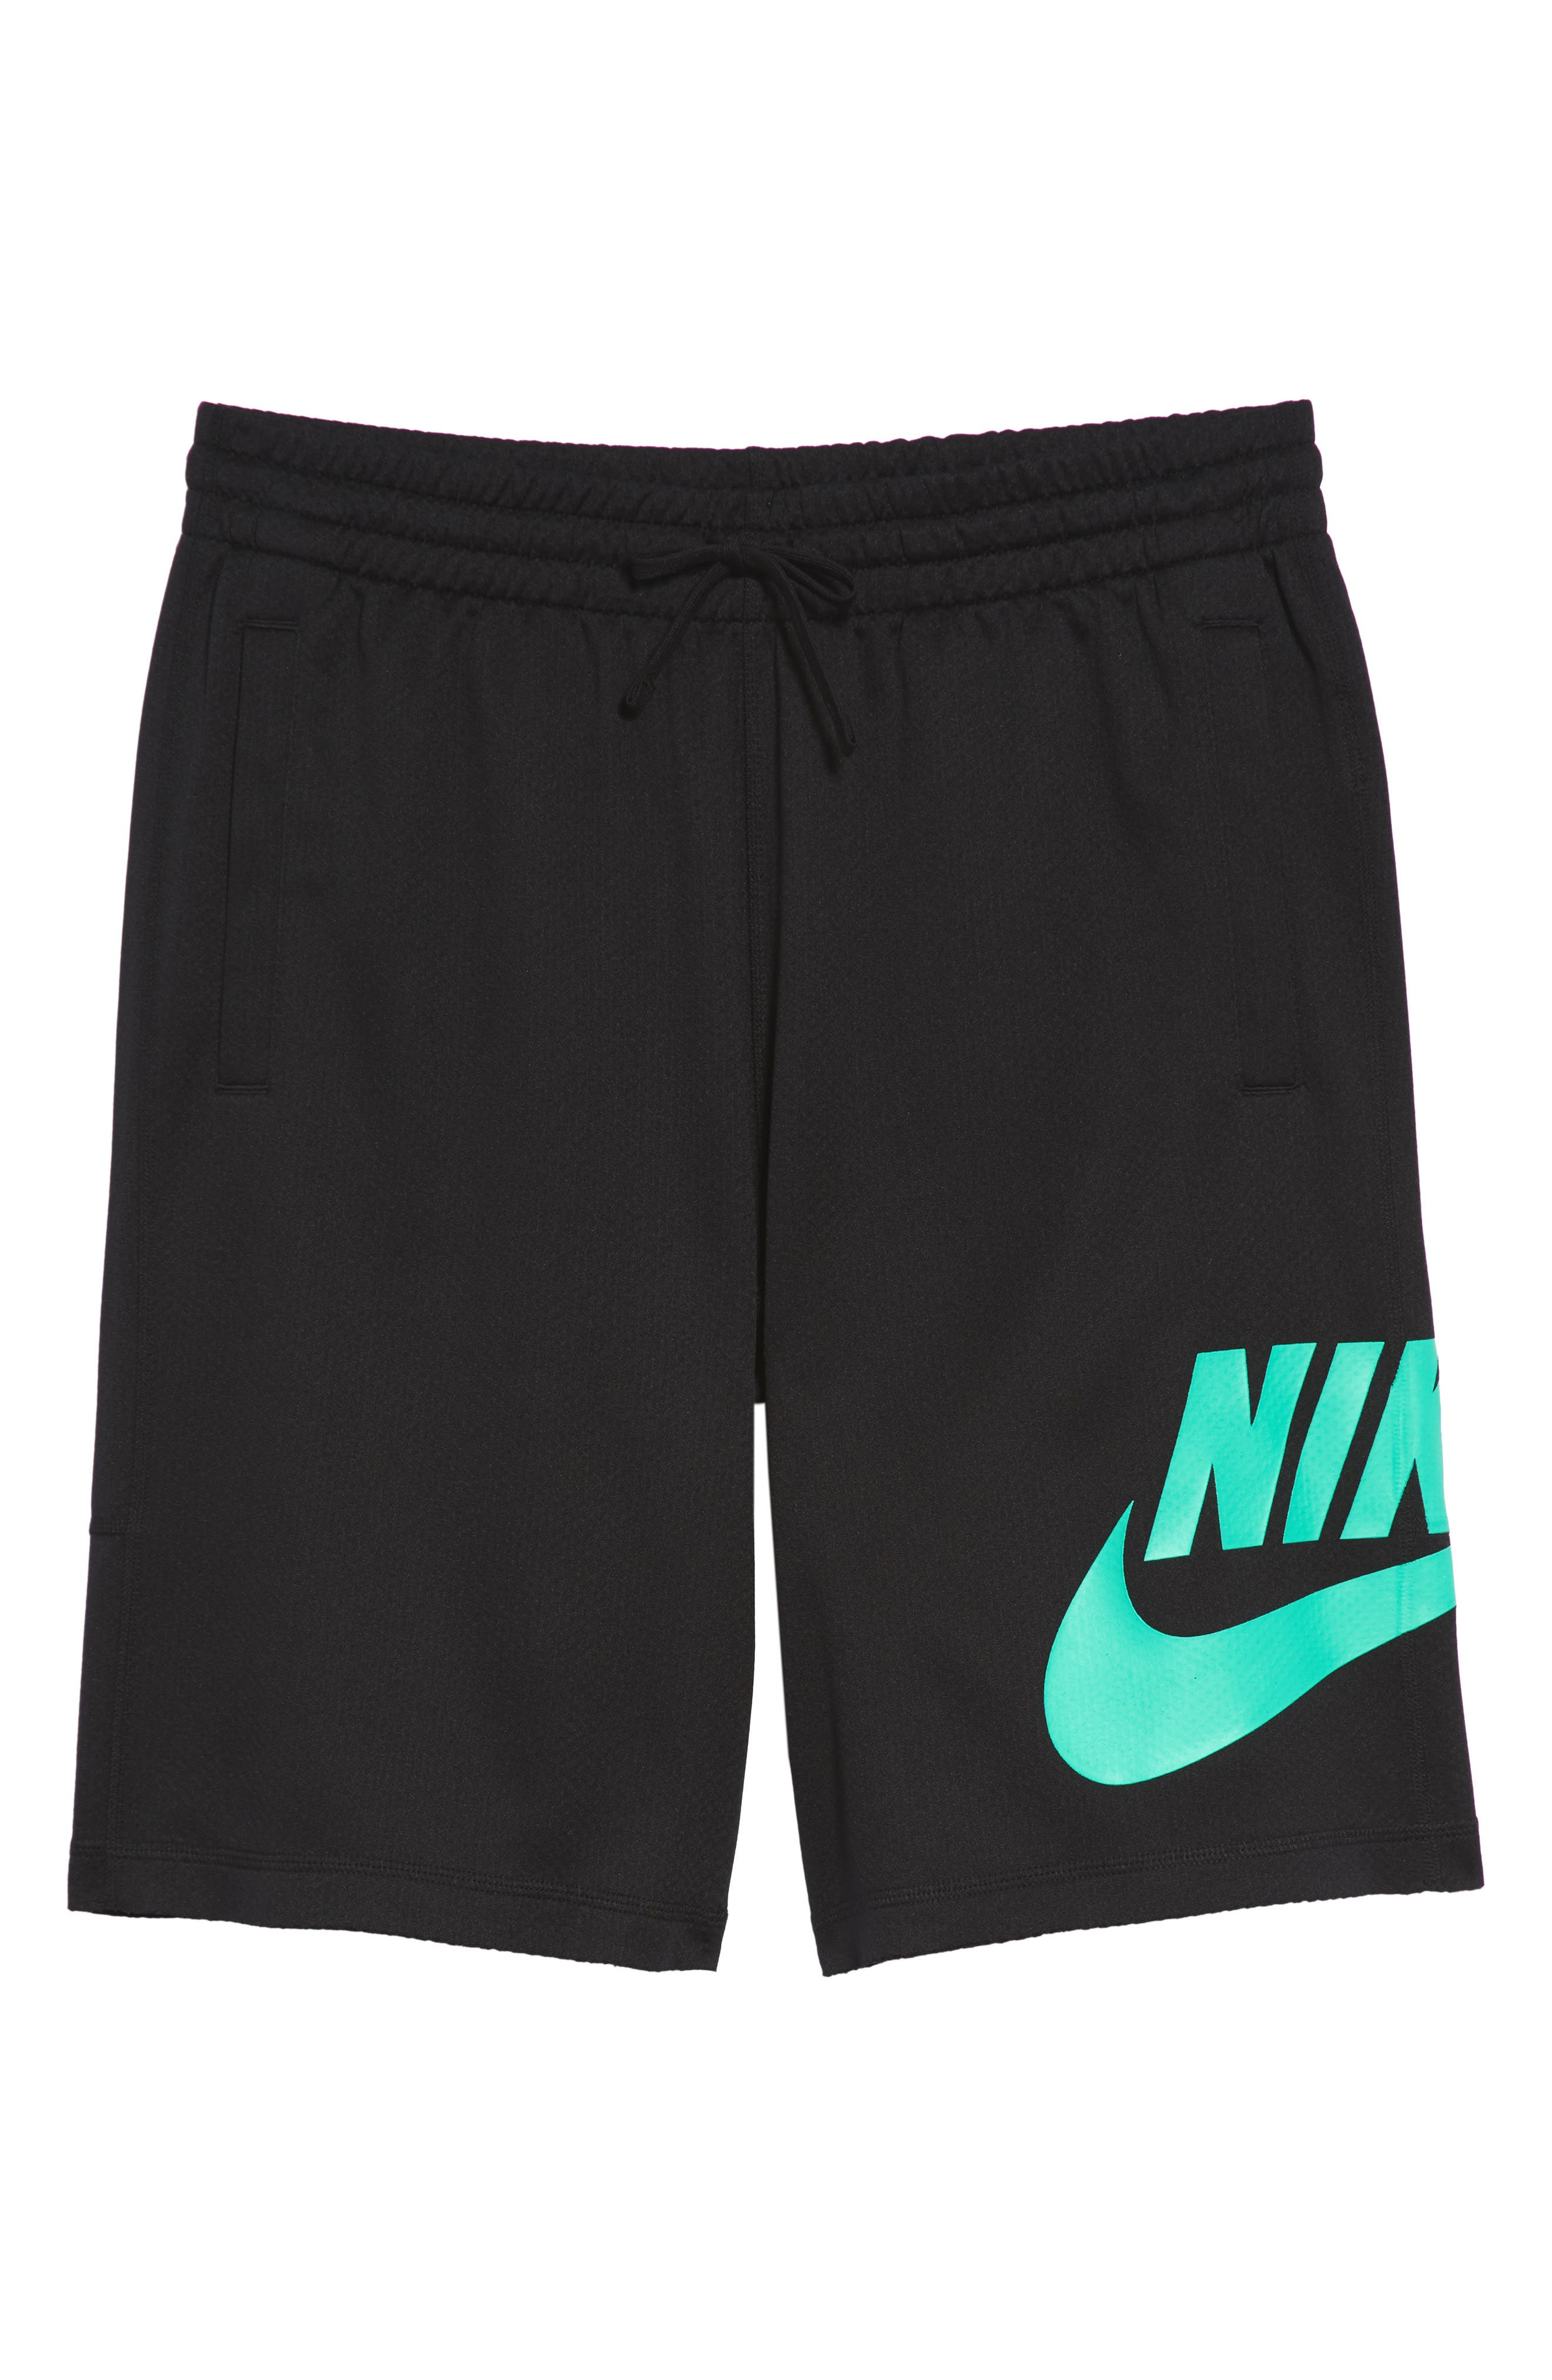 Sunday Dri-FIT Shorts,                             Alternate thumbnail 6, color,                             014